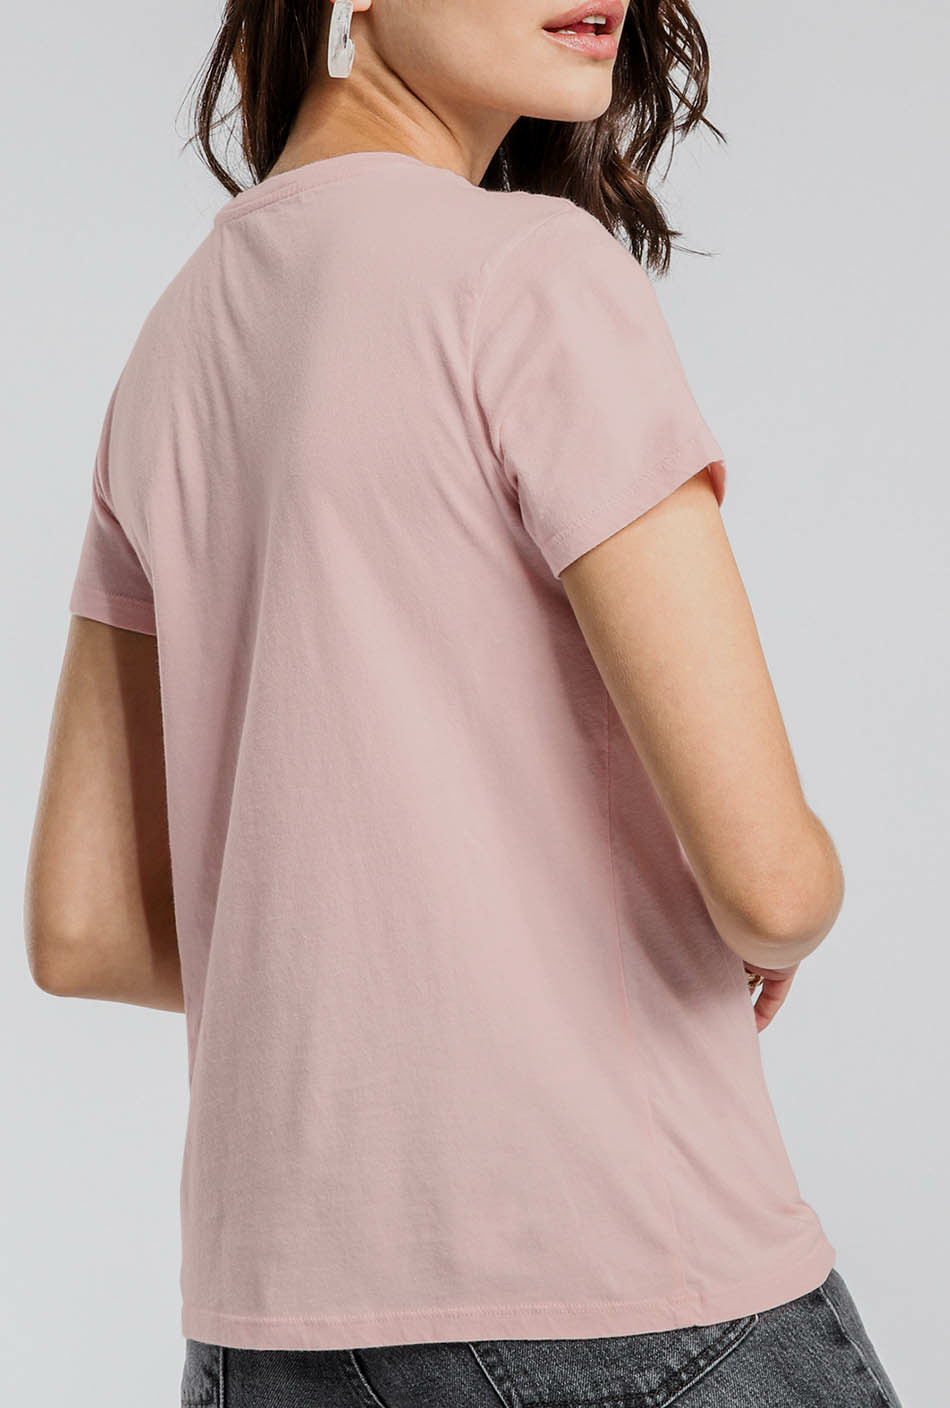 Levi's The Perfect Tee Marys Rose